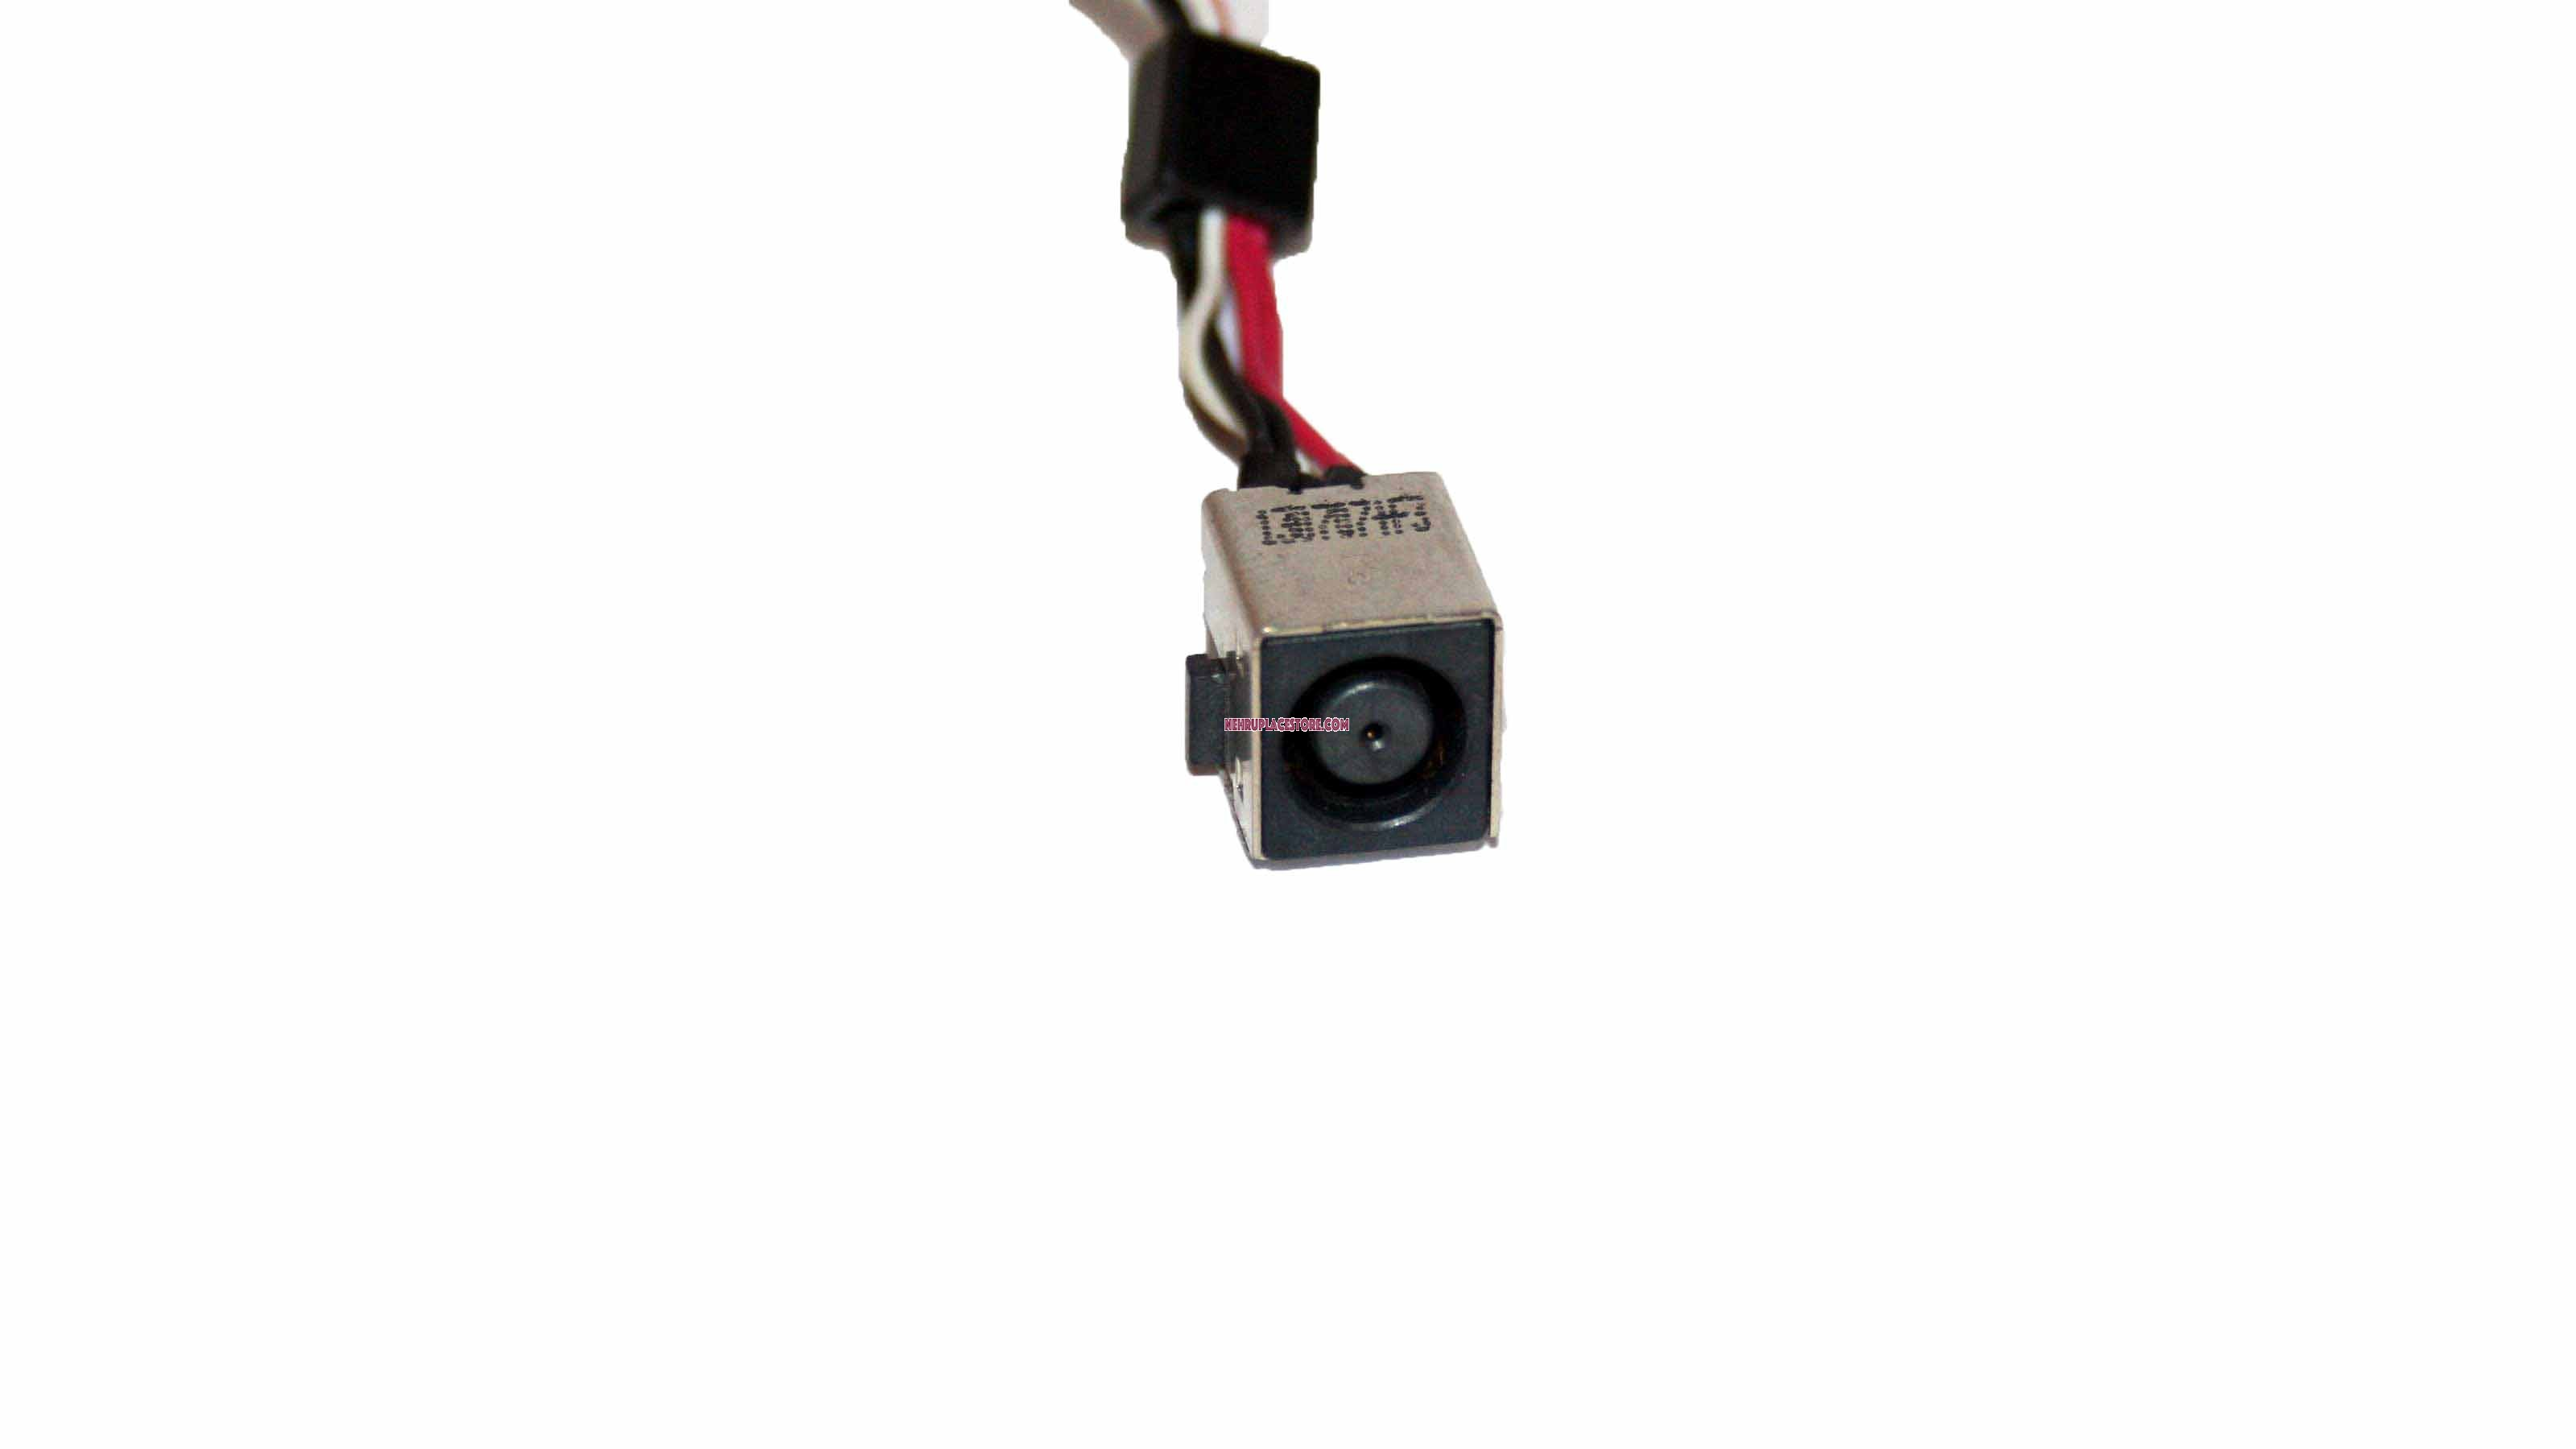 Dell Inspiron 15R (5520 / 7520) DC Power Input Jack Plug Cable - WX67P